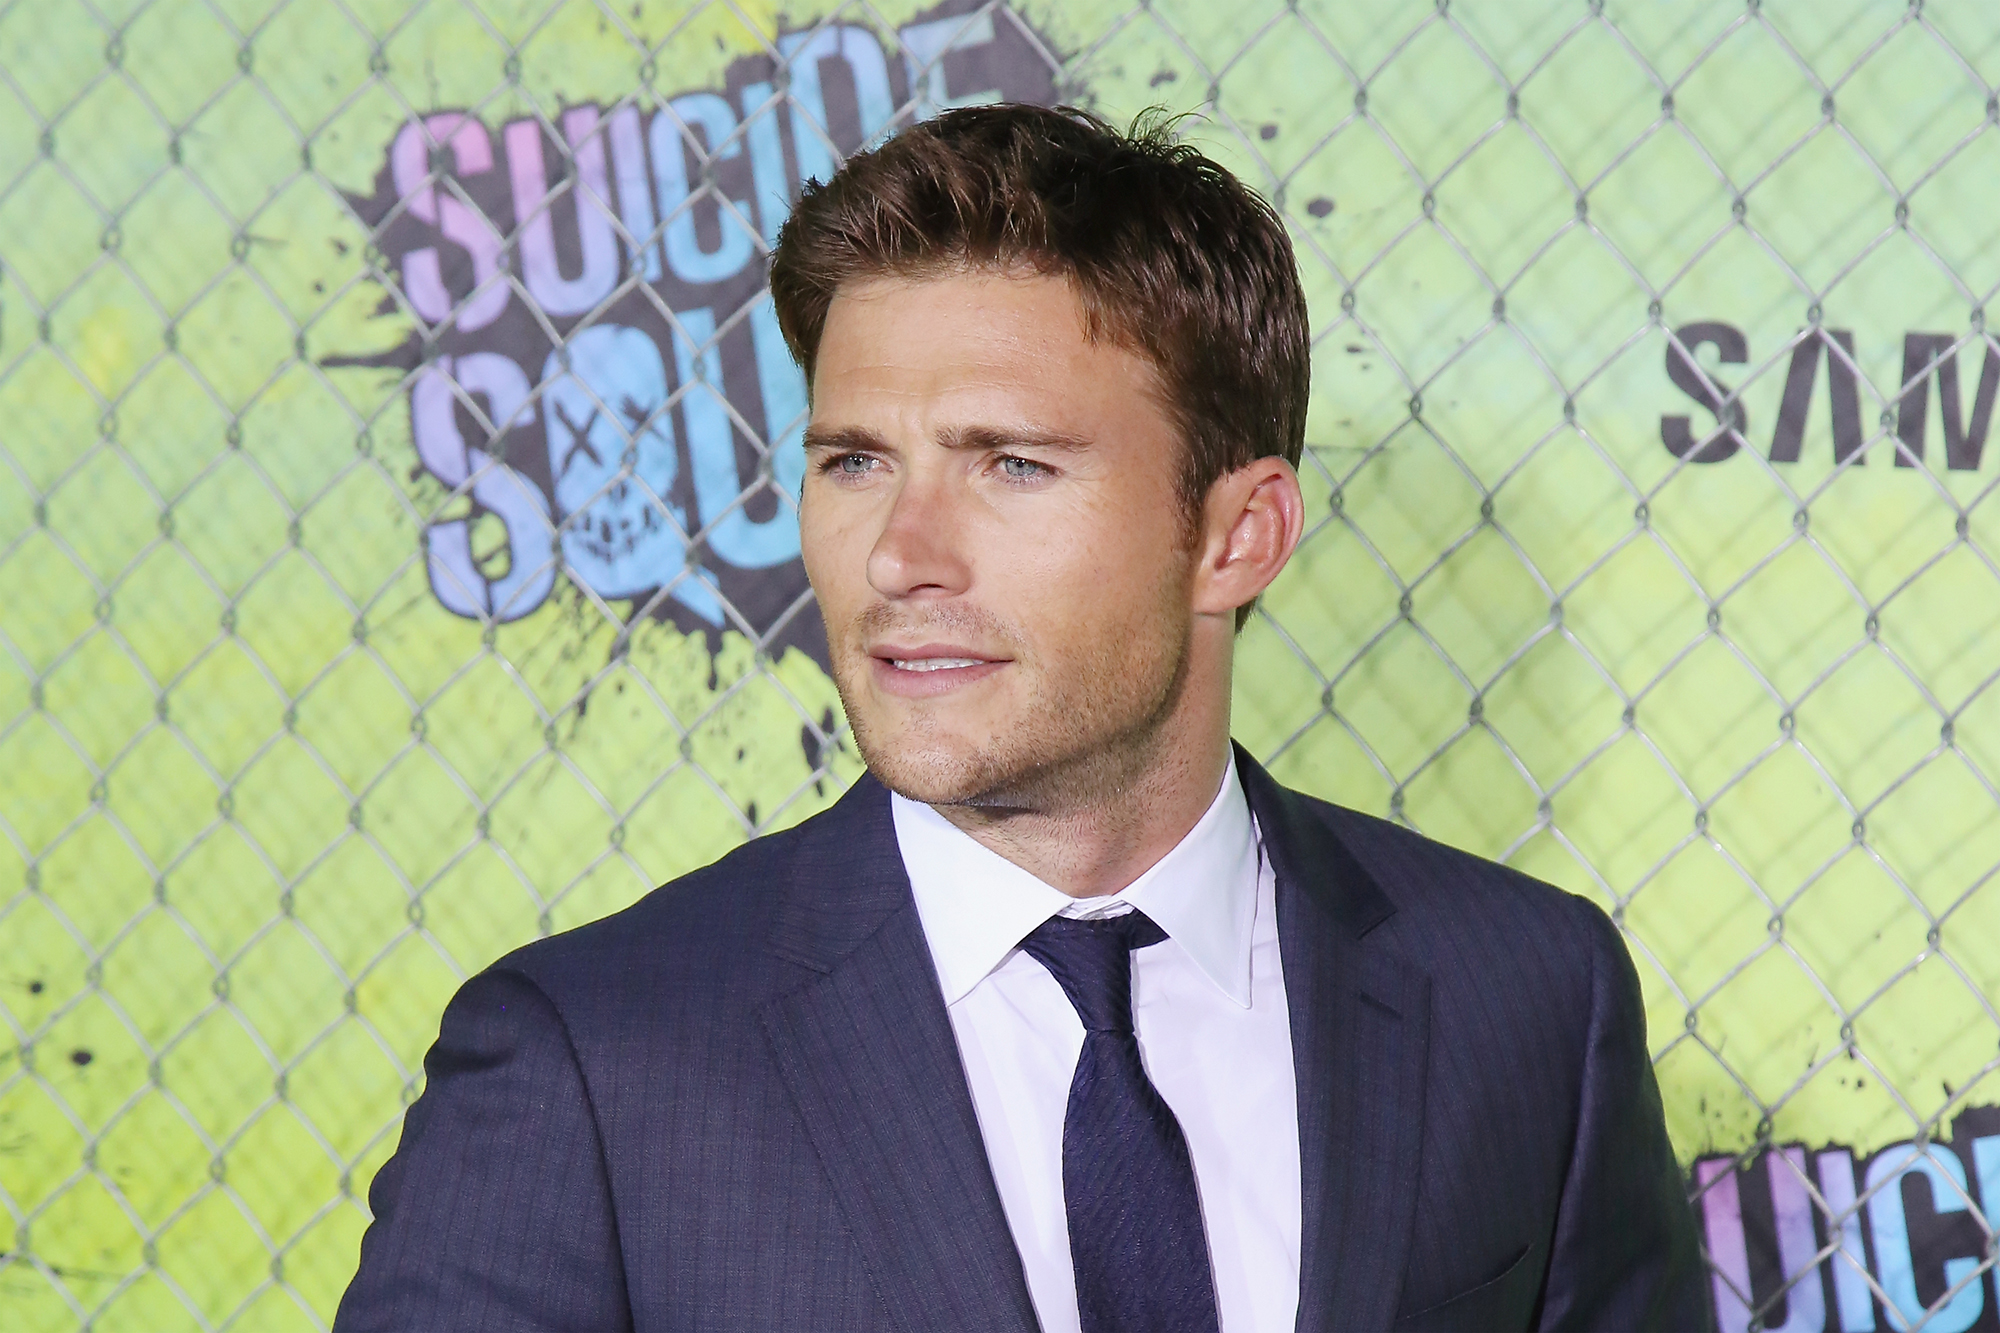 Scott Eastwood attends the  Suicide Squad  world premiere at The Beacon Theatre on August 1, 2016 in New York City.  (Photo by Mireya Acierto/FilmMagic)